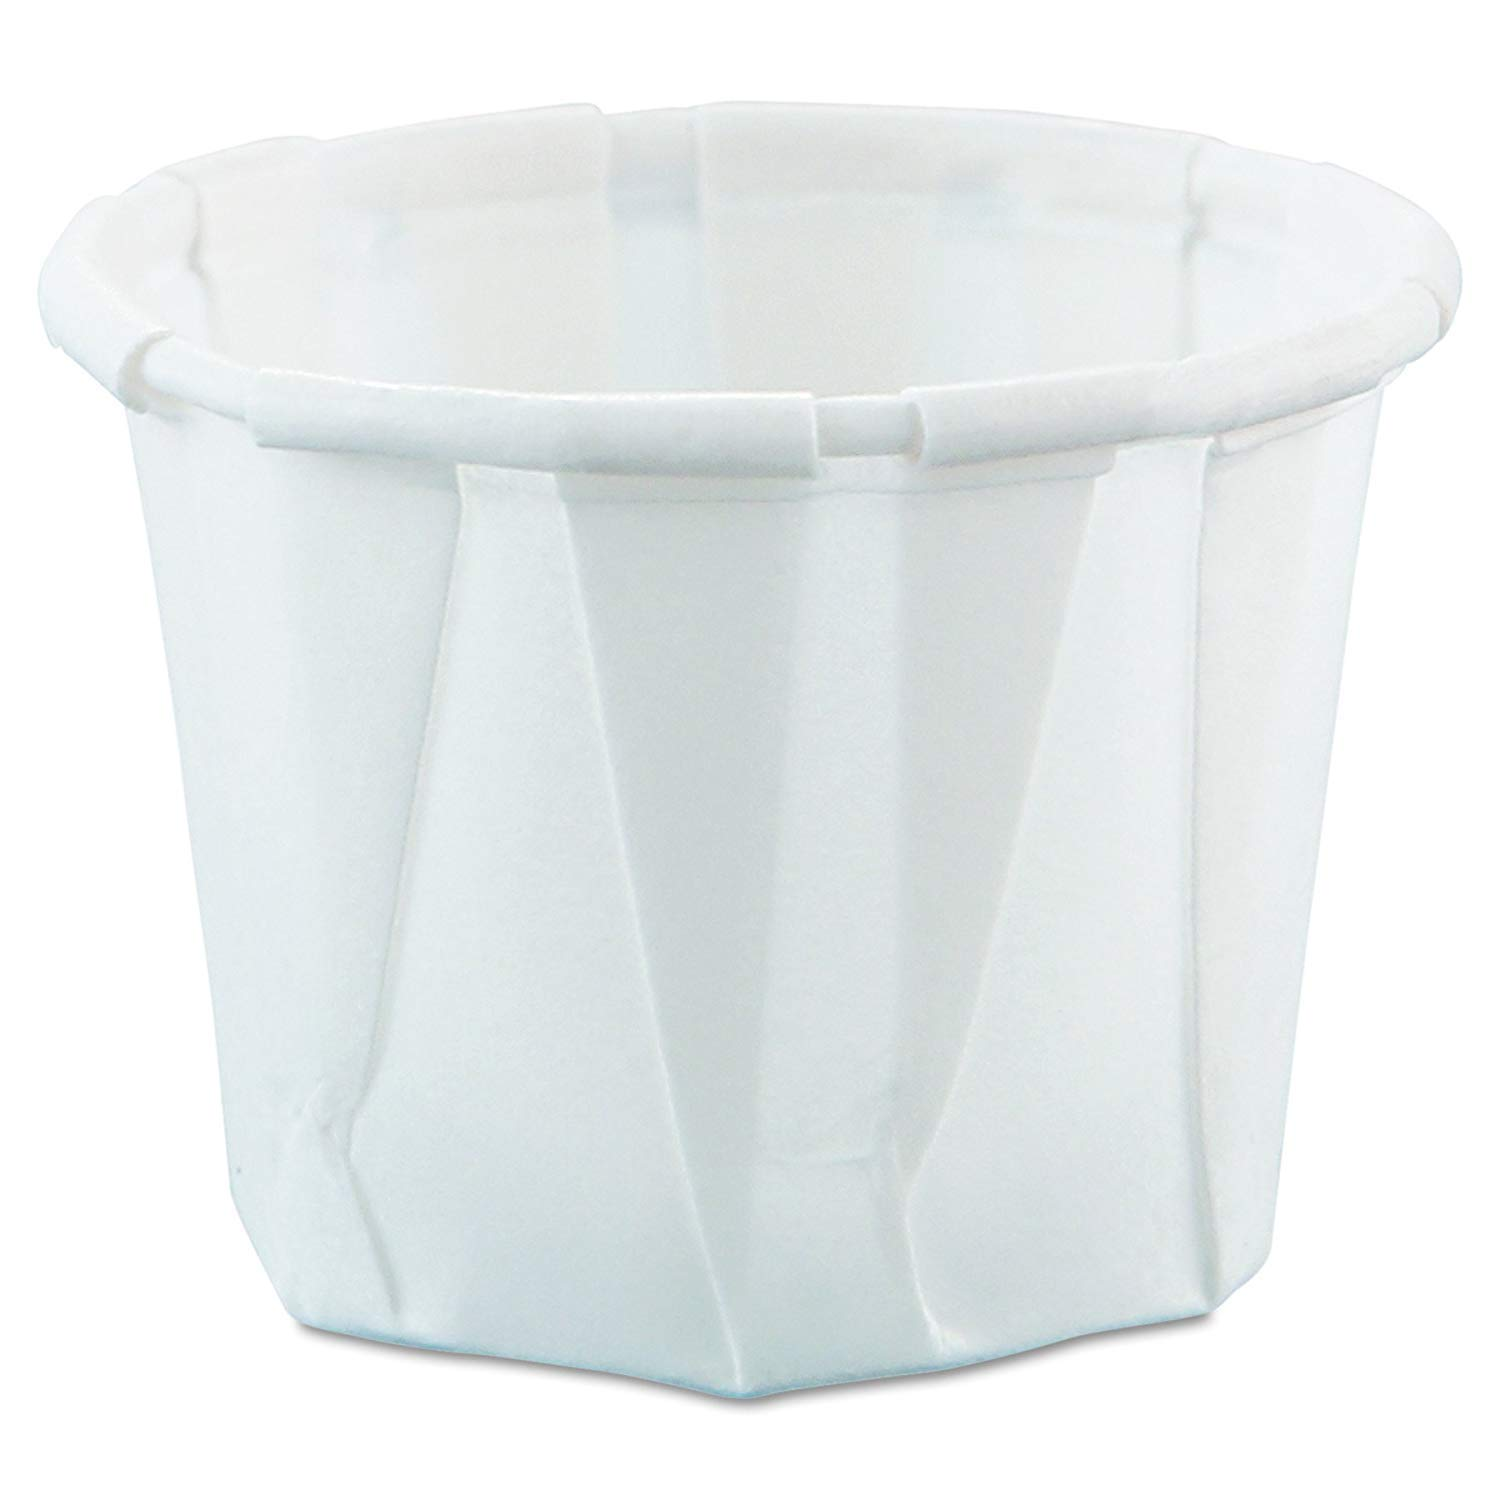 SOLO Cup Company Treated Paper Souffle Portion Cups, 1/2 oz, White, 250 per Bag, 20 Sleeves of 250 Cups, 5000 per Case by SOLO Cup Company